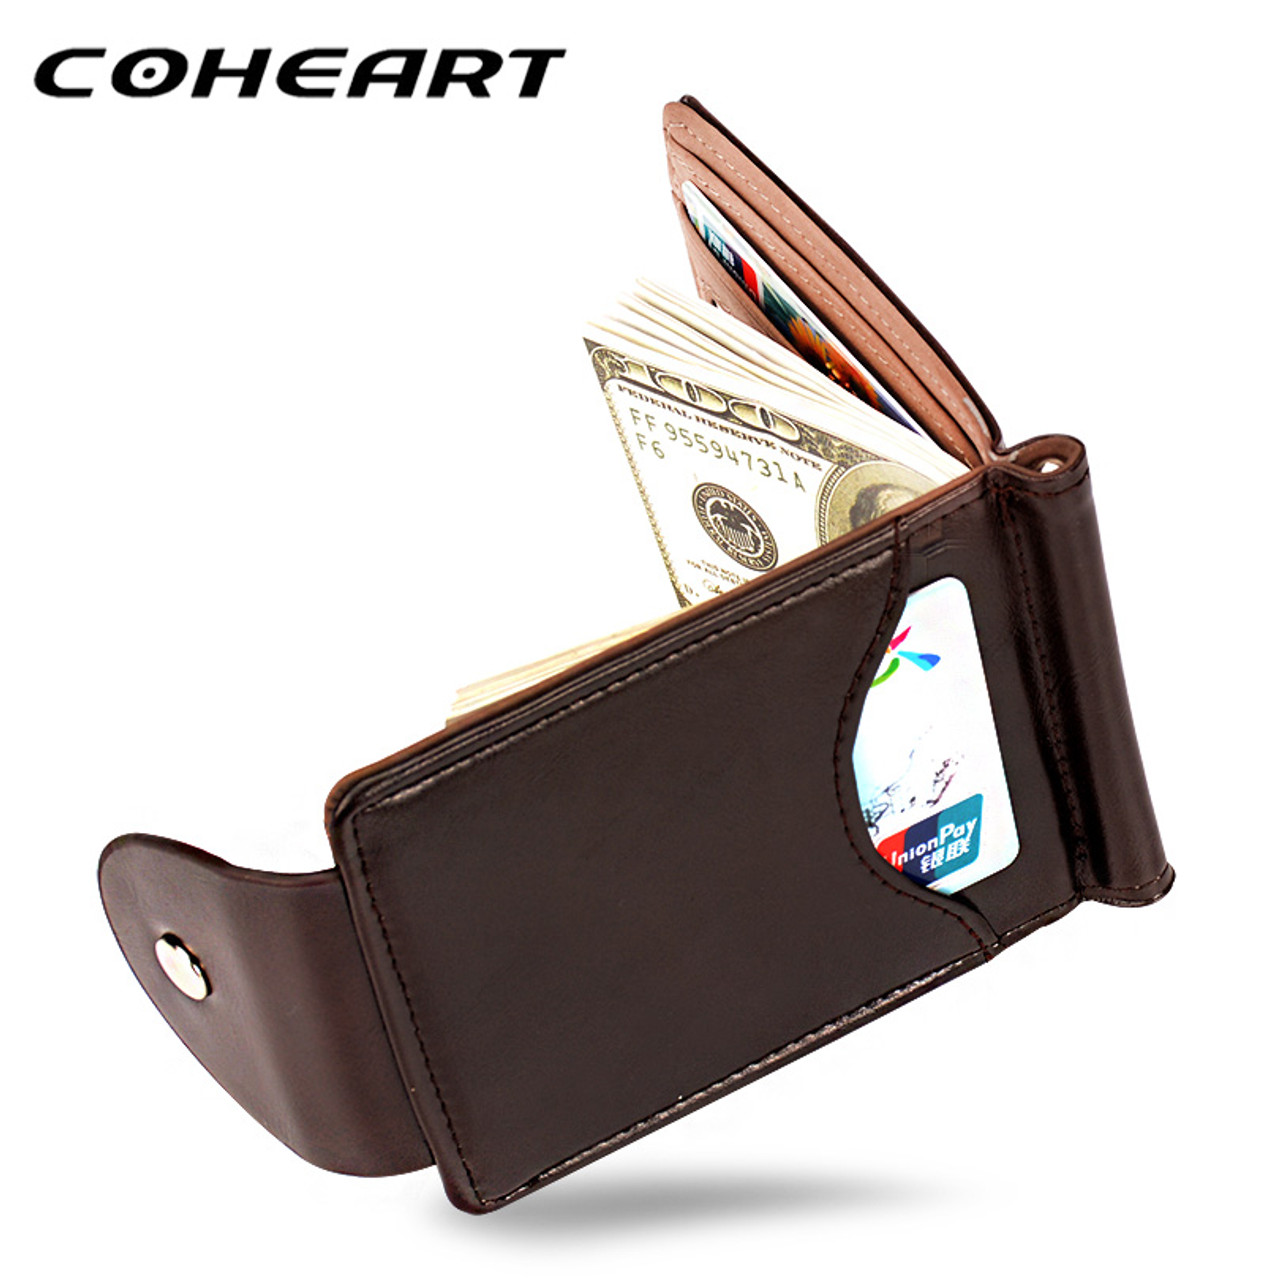 bd4ced35eb COHEART Top Quality Wallet Men Money Clip Mini Wallets Male Vintage Style  Brown Grey Hasp Purse Leather Card Holers with Clamp